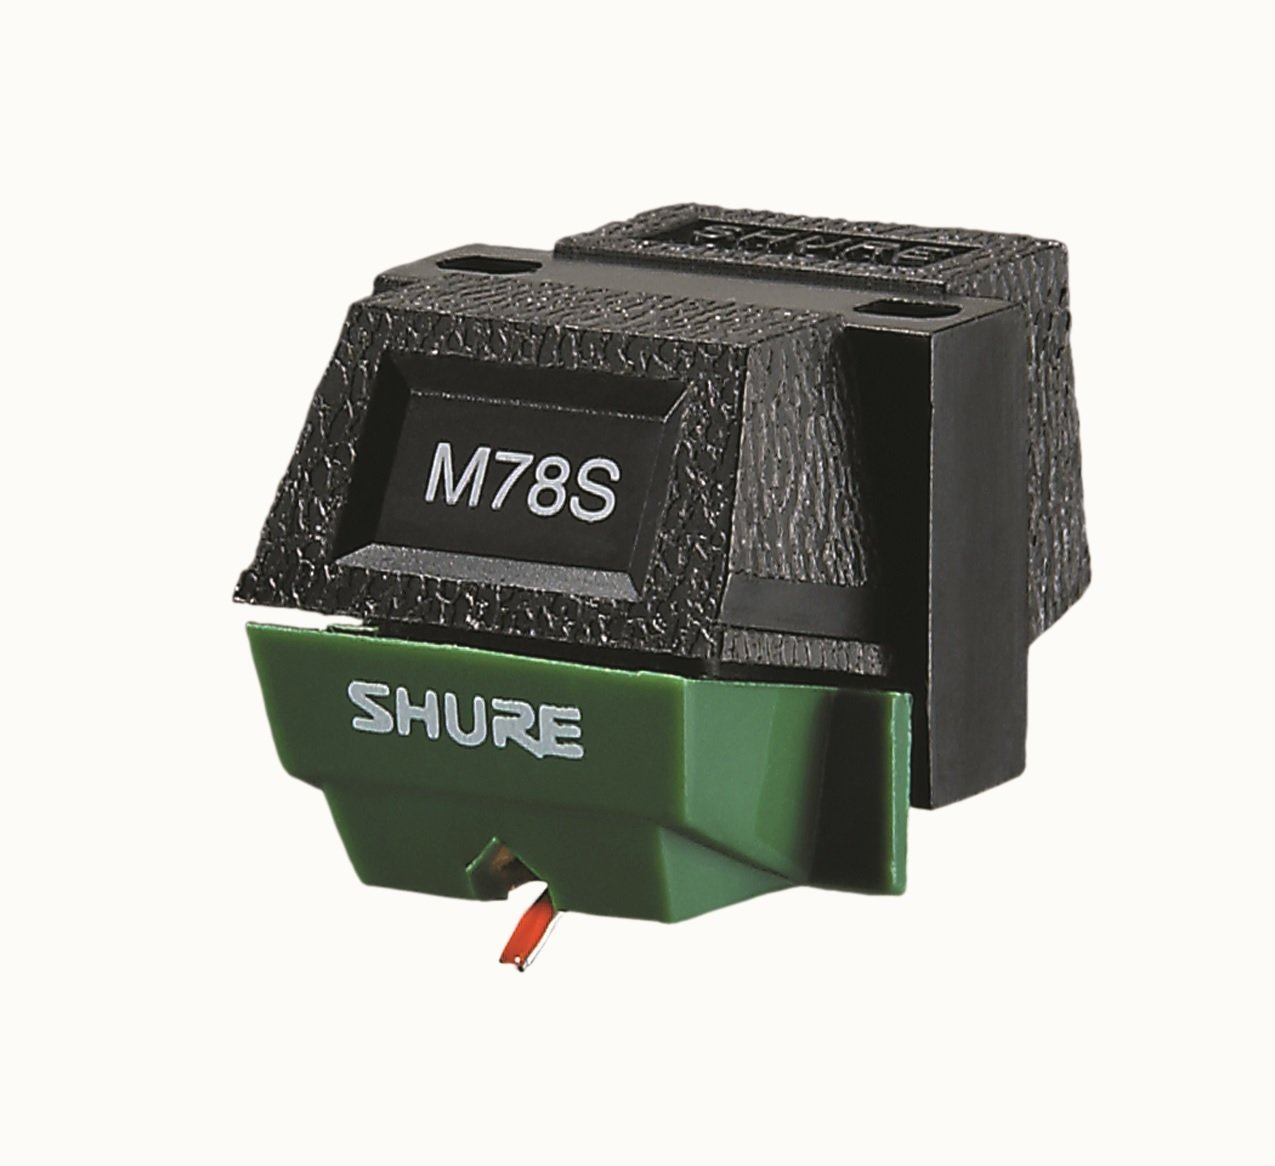 Shure M78s Wide Groove Monophonic Cartridge Musical Magnetic Preamplifier By Lt1028 Product Description Stylephono